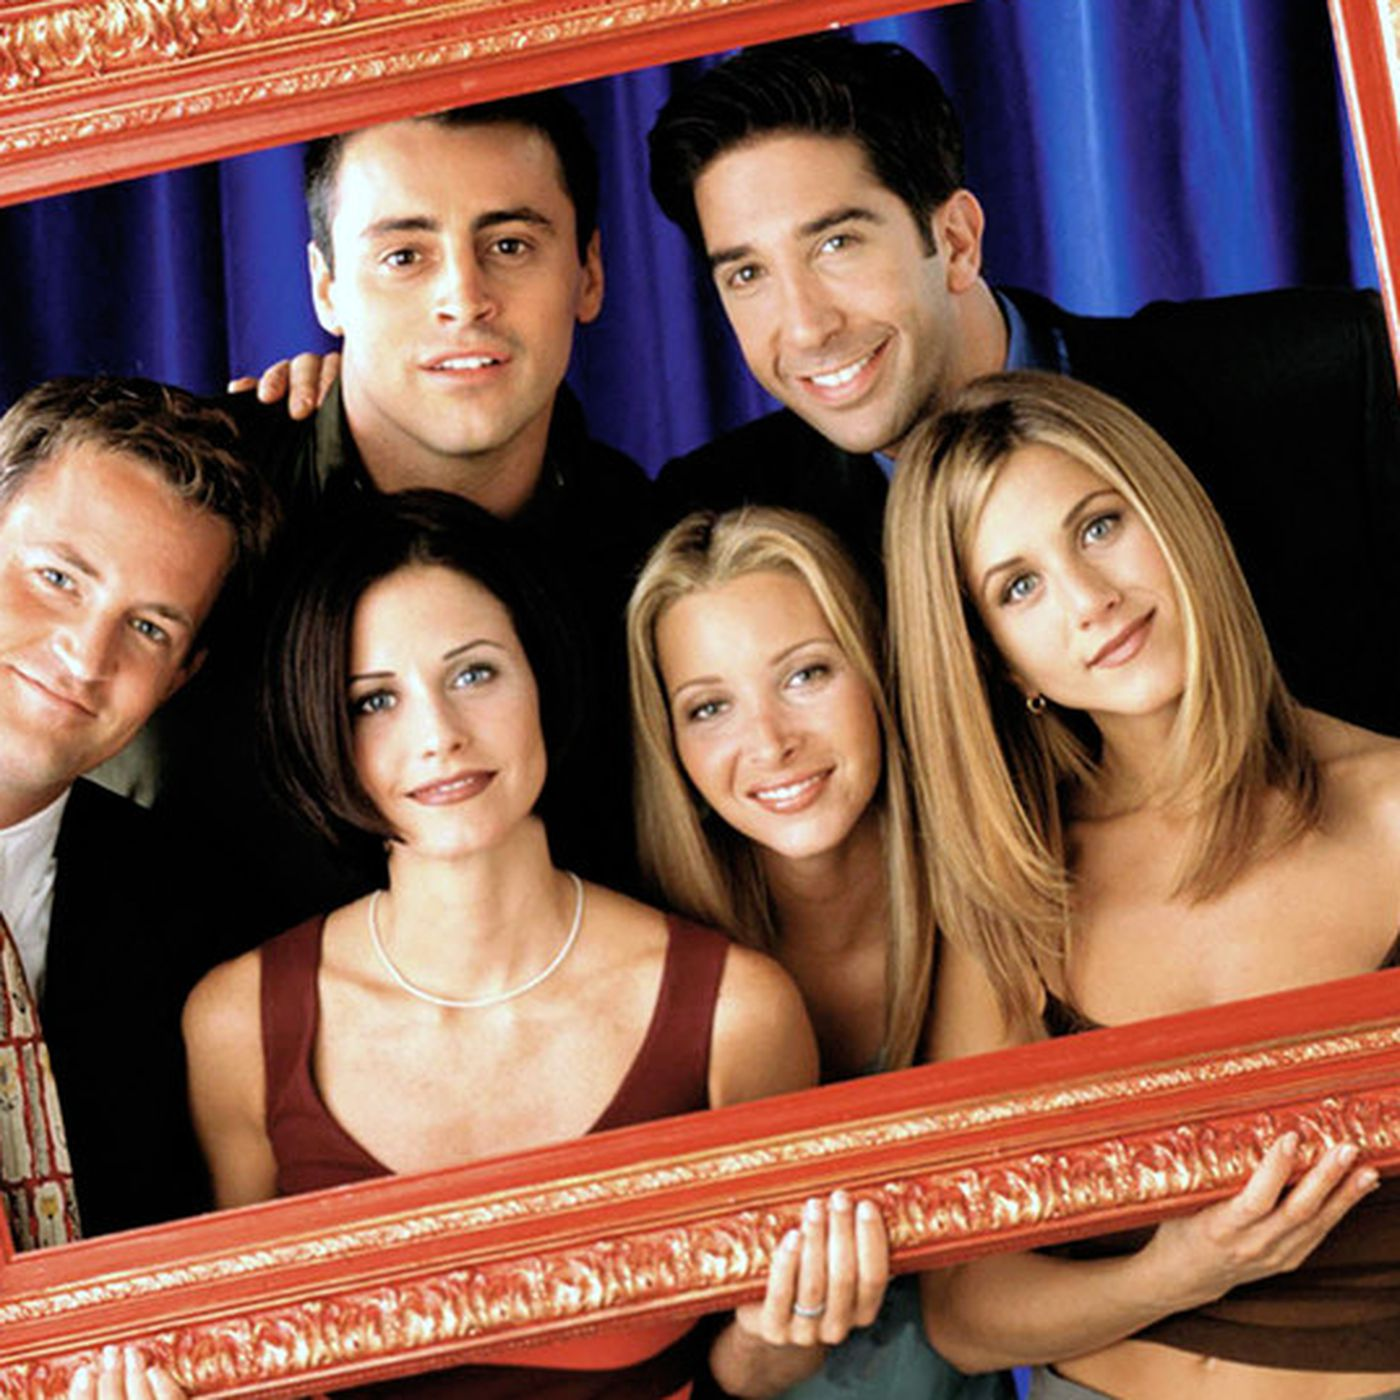 Every episode of Friends is now on Netflix - The Verge